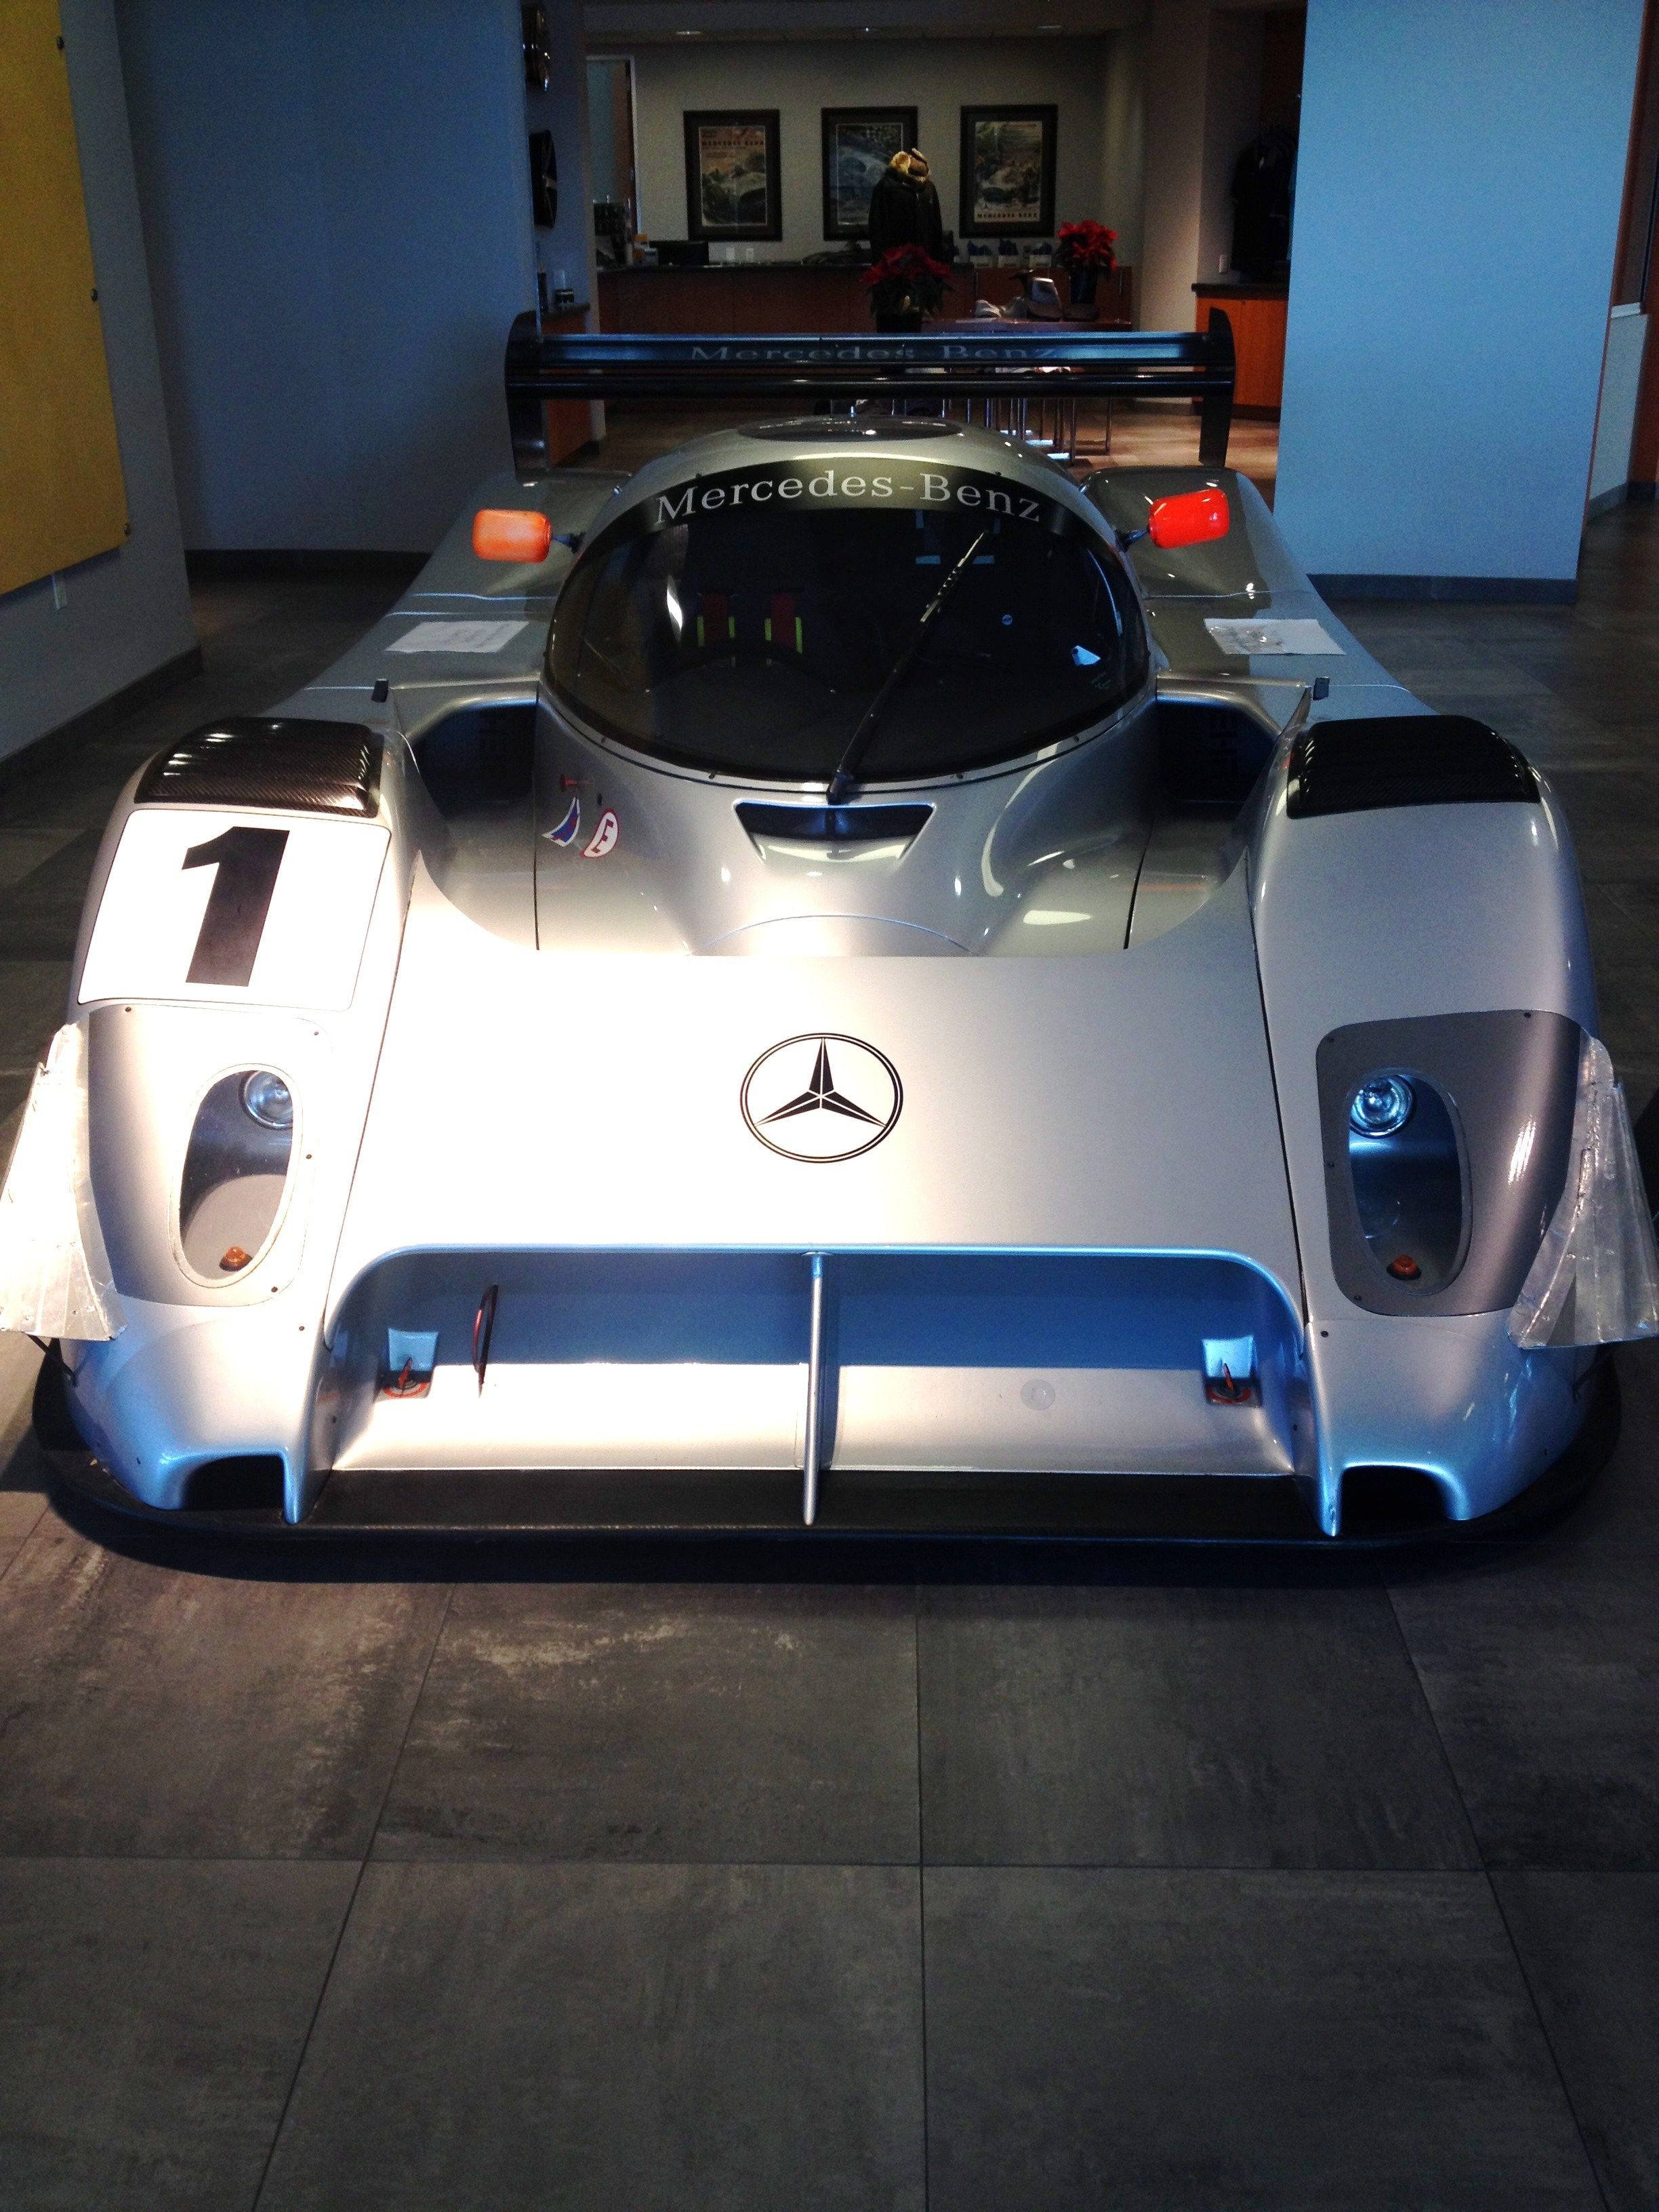 Mercedes Benz Race Car.